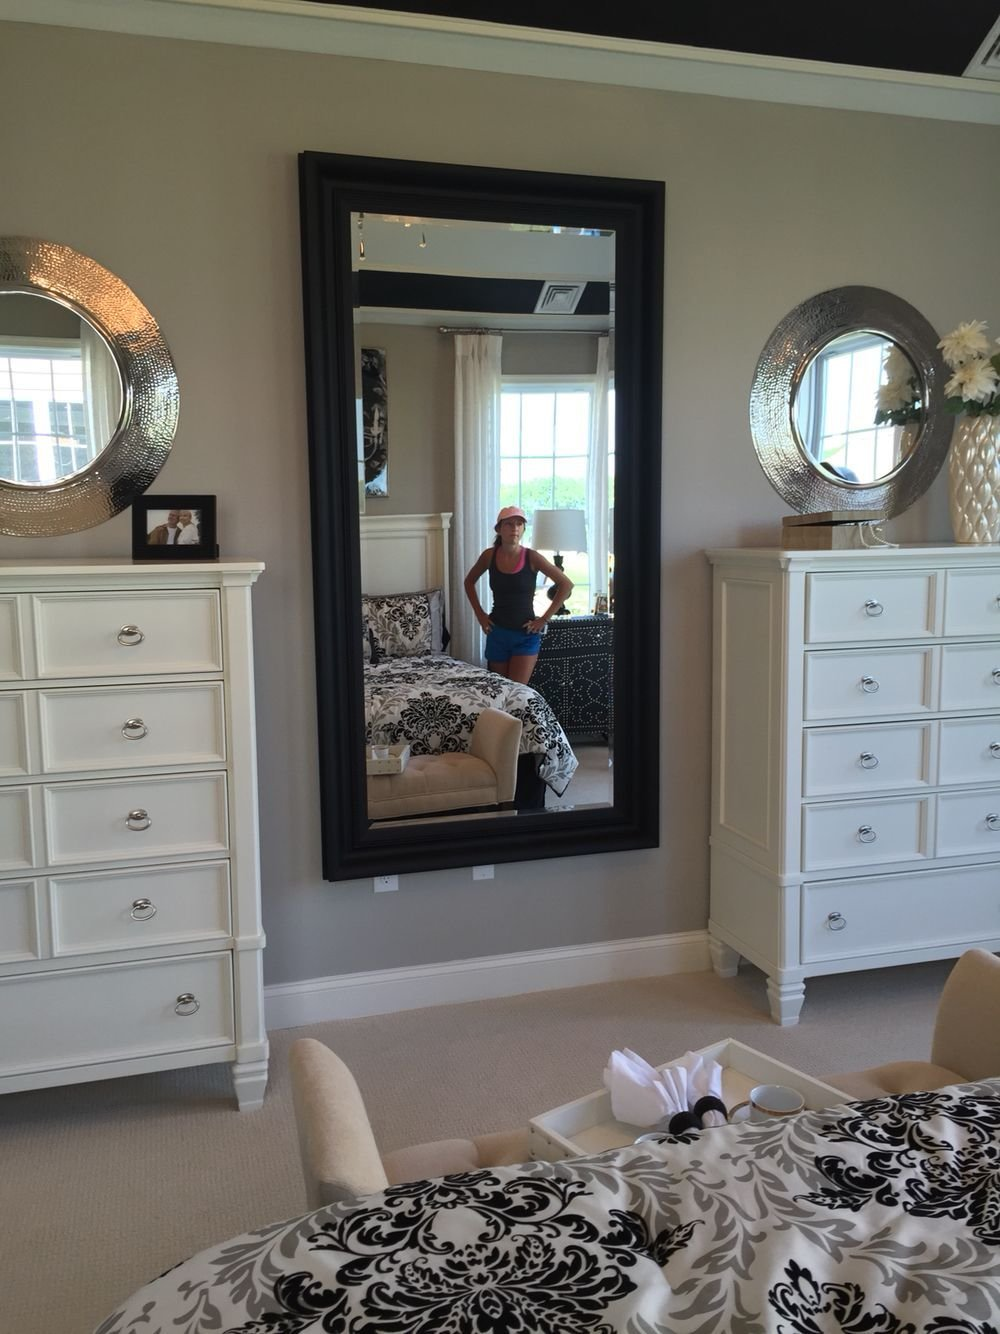 Best 25 Dresser Ideas Ideas On Pinterest Upcycled With Pictures